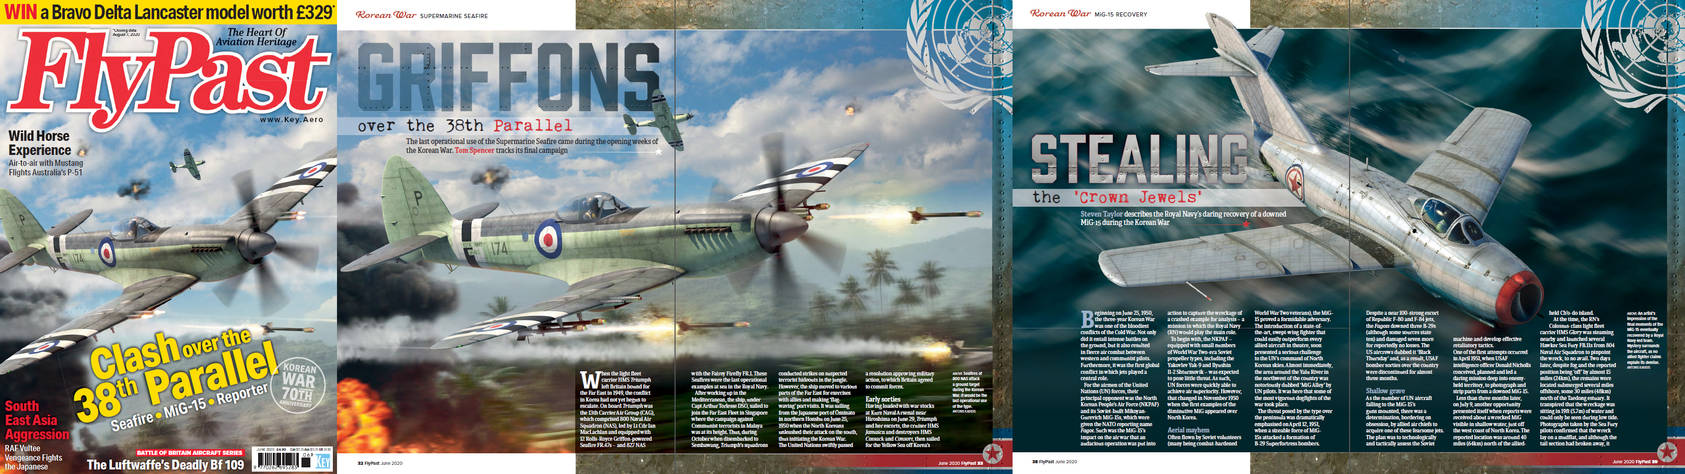 Flypast Magazine May 2020 Issue